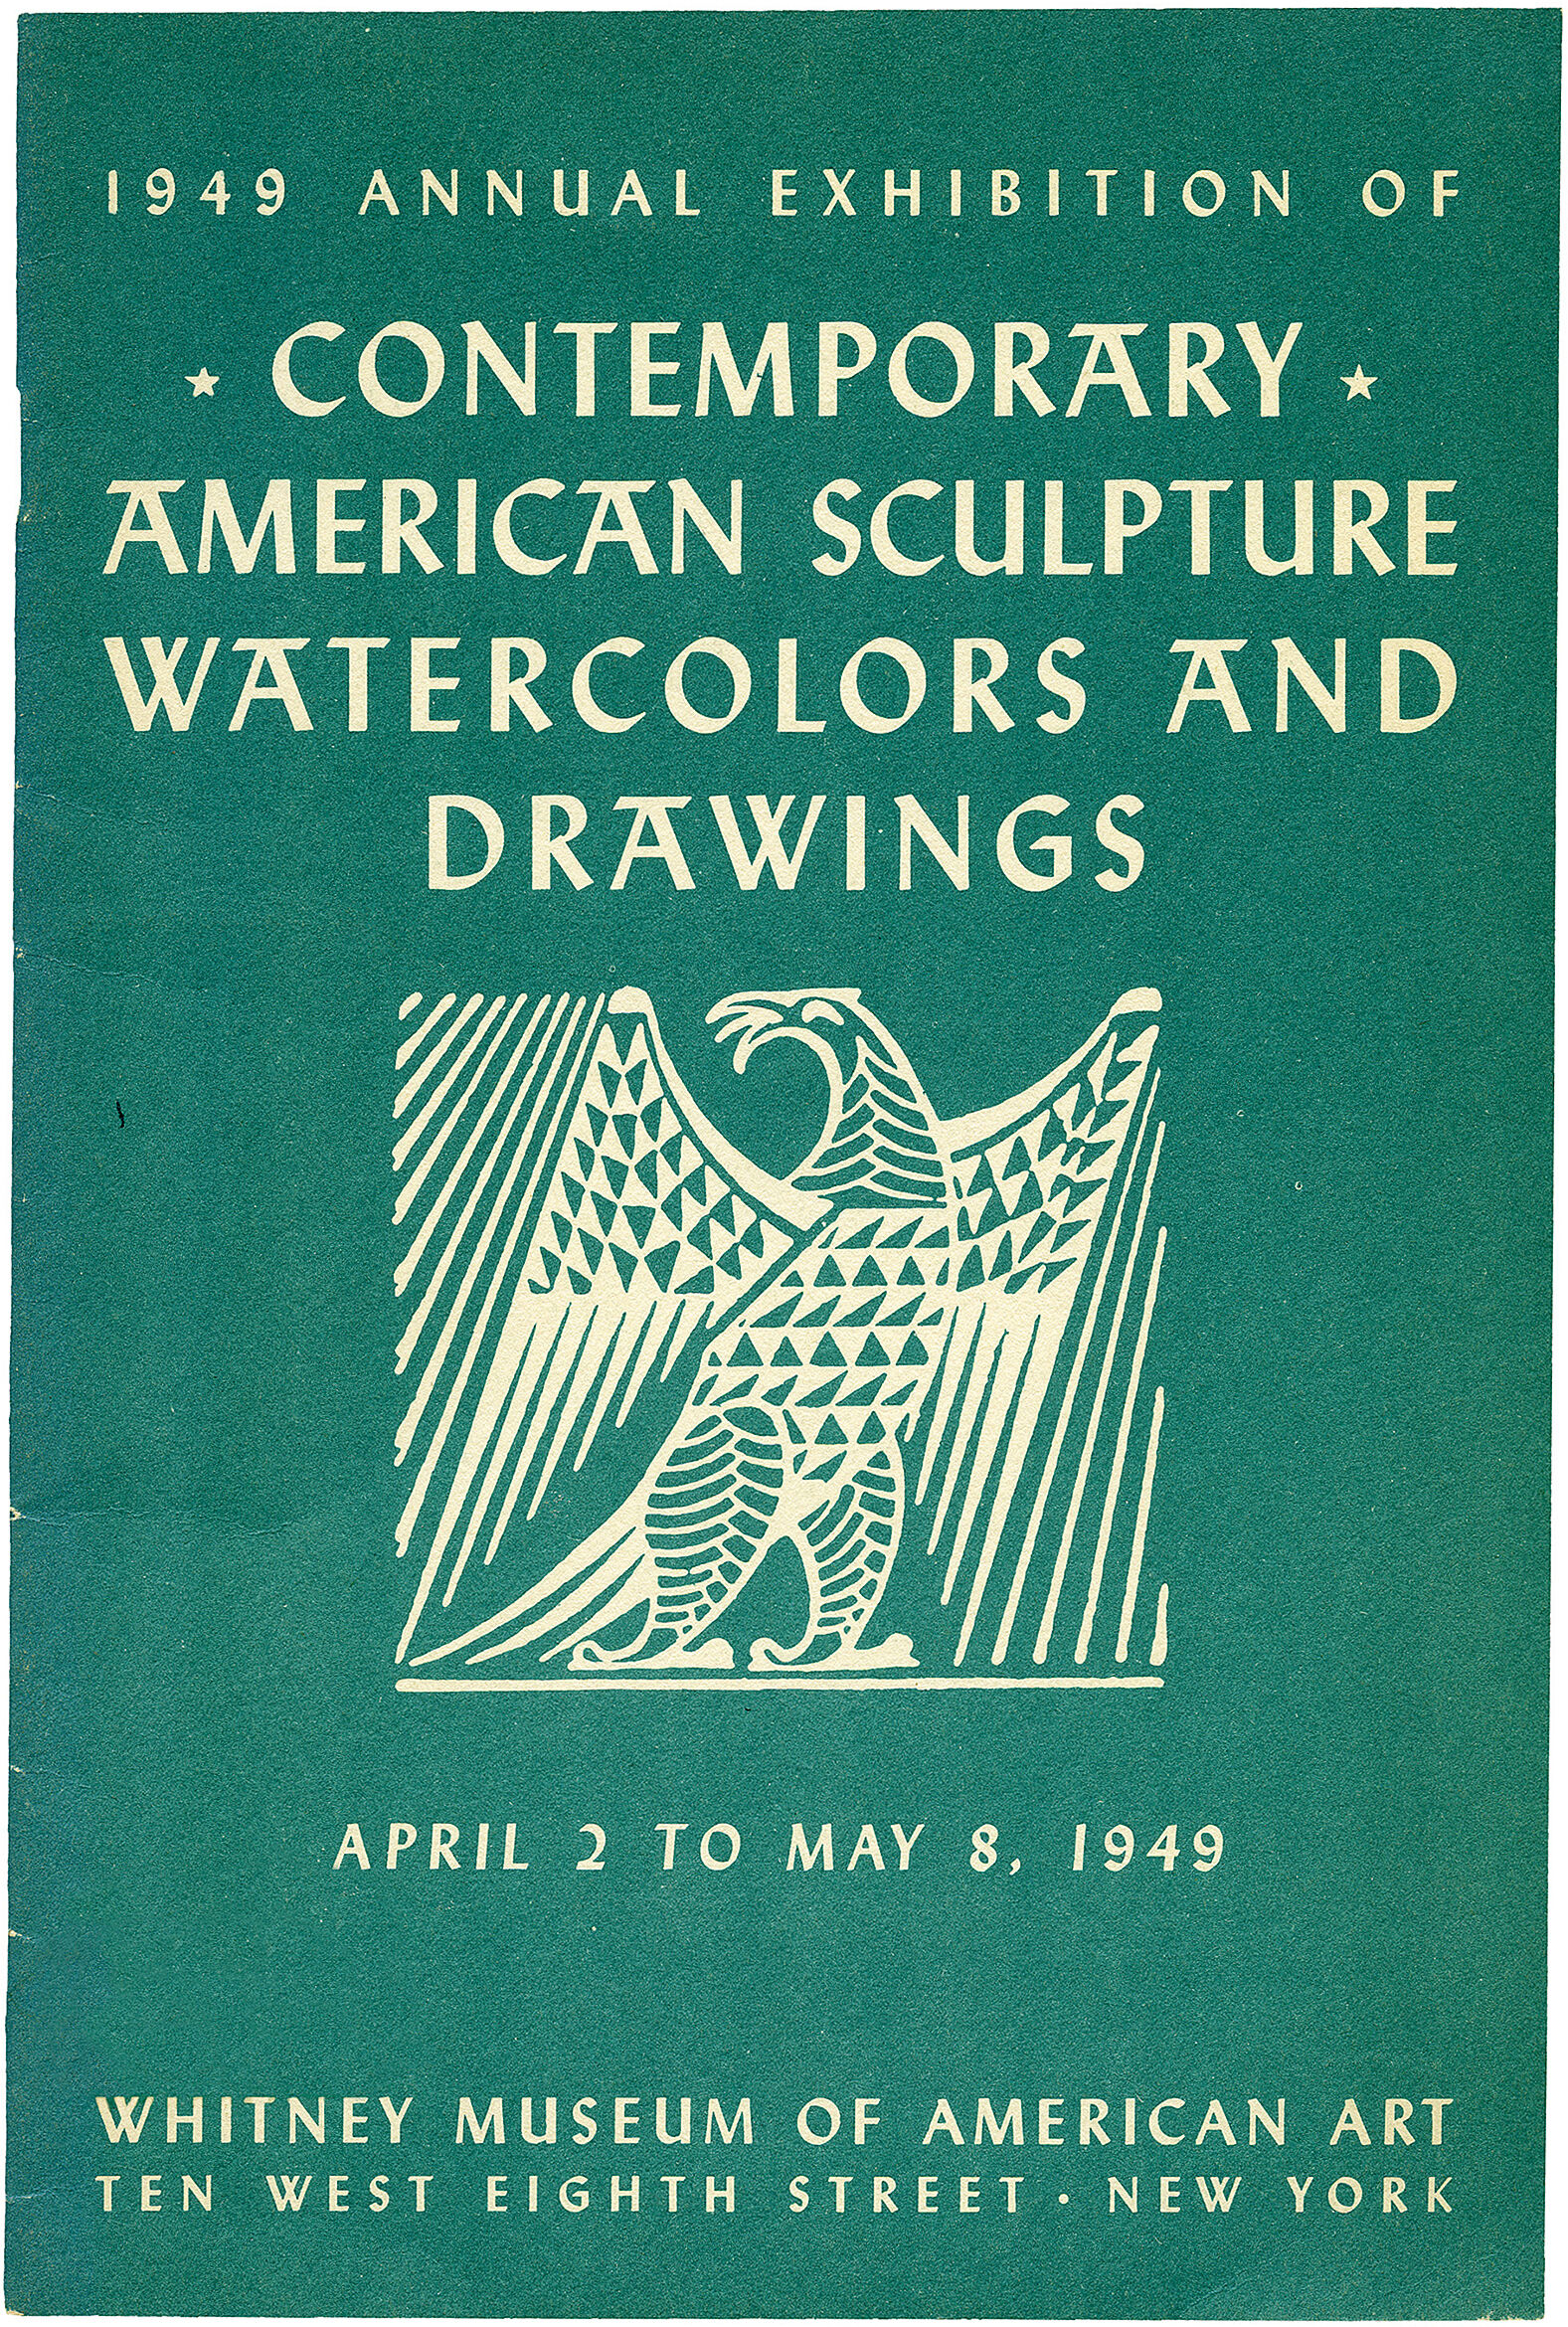 Cover for 1949 Annual Exhibition of Contemporary American Sculpture, Watercolors and Drawings catalogue